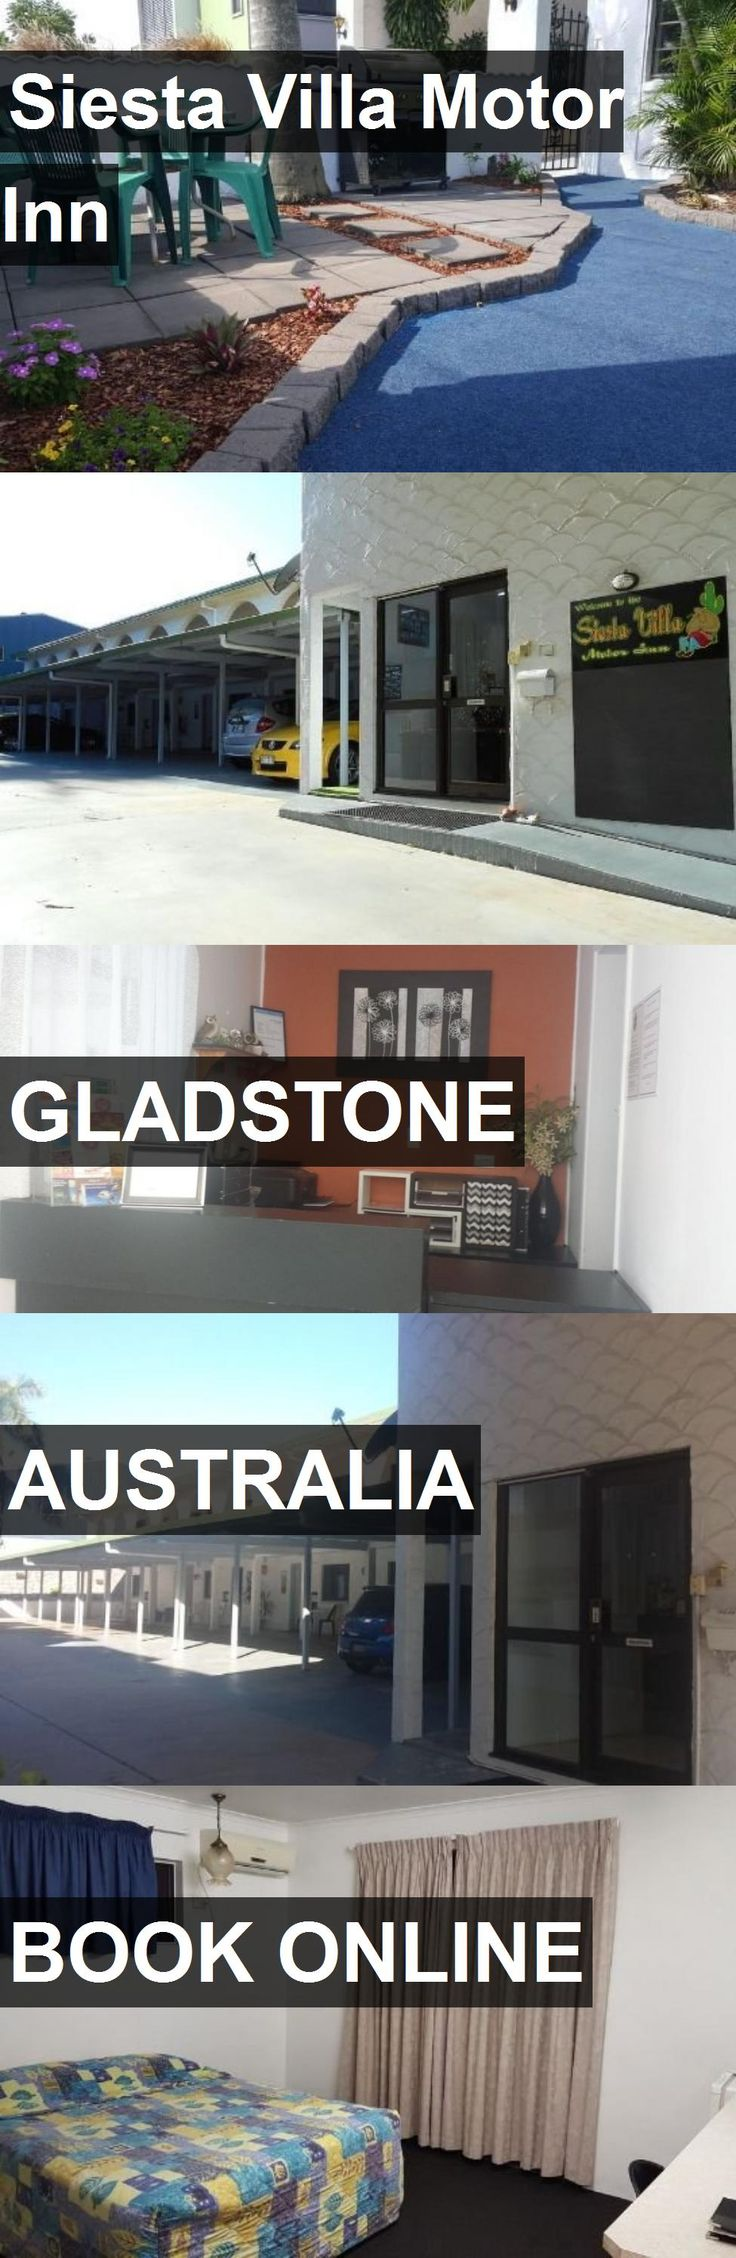 Hotel Siesta Villa Motor Inn in Gladstone, Australia. For more information, photos, reviews and best prices please follow the link. #Australia #Gladstone #travel #vacation #hotel